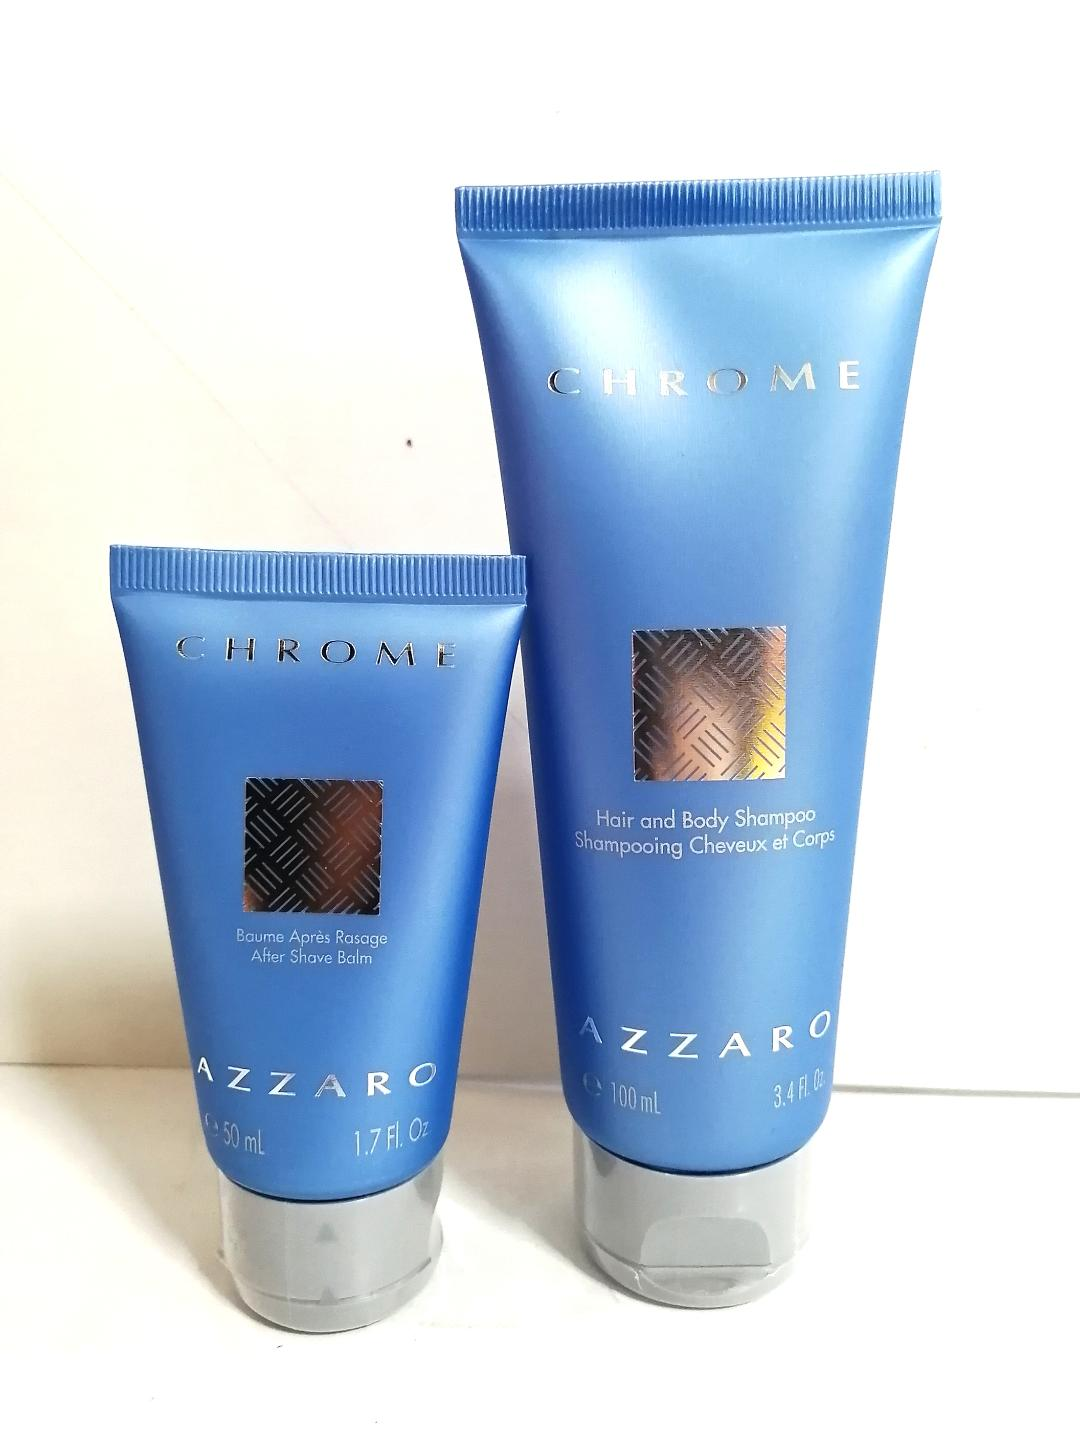 Azzaro Chrome Two Tubes 100ml Hair and Body Shampoo with 50ml After Shave Balm Unboxed